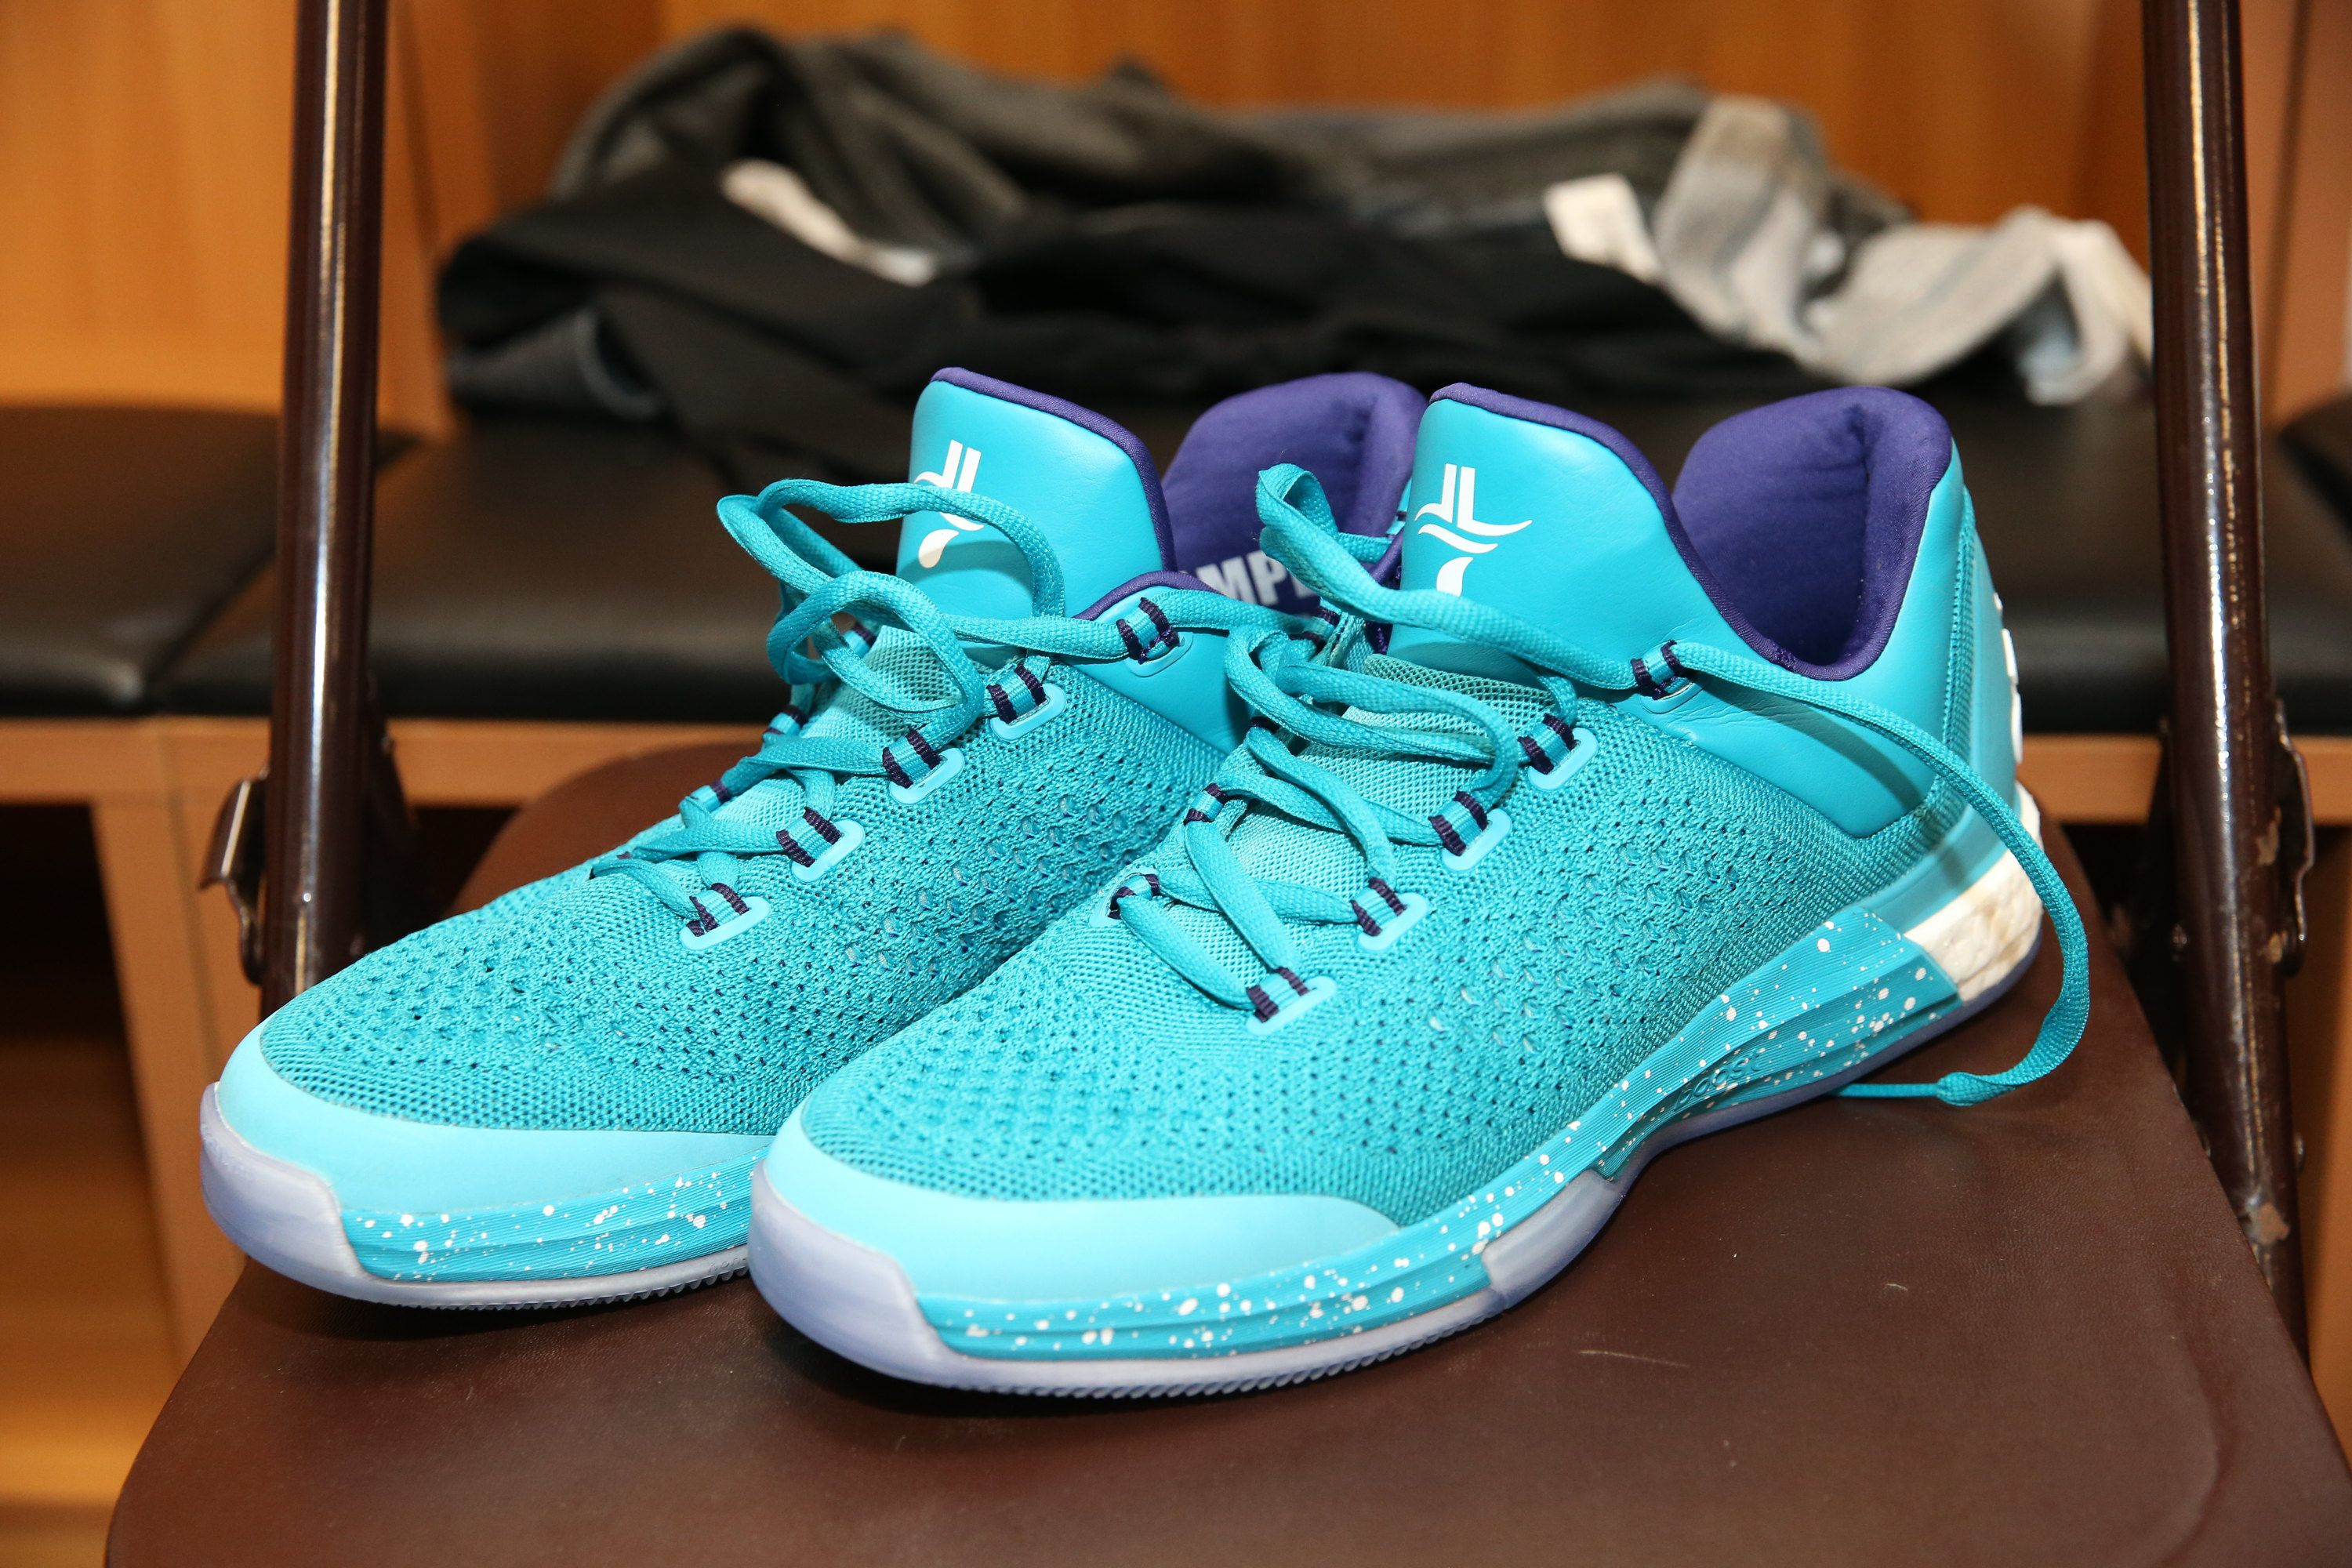 b317f6e72dc3 Jeremy Lin s  NBAKicks Charlotte Hornets colorway for 2015  NBAGlobalGames  in China